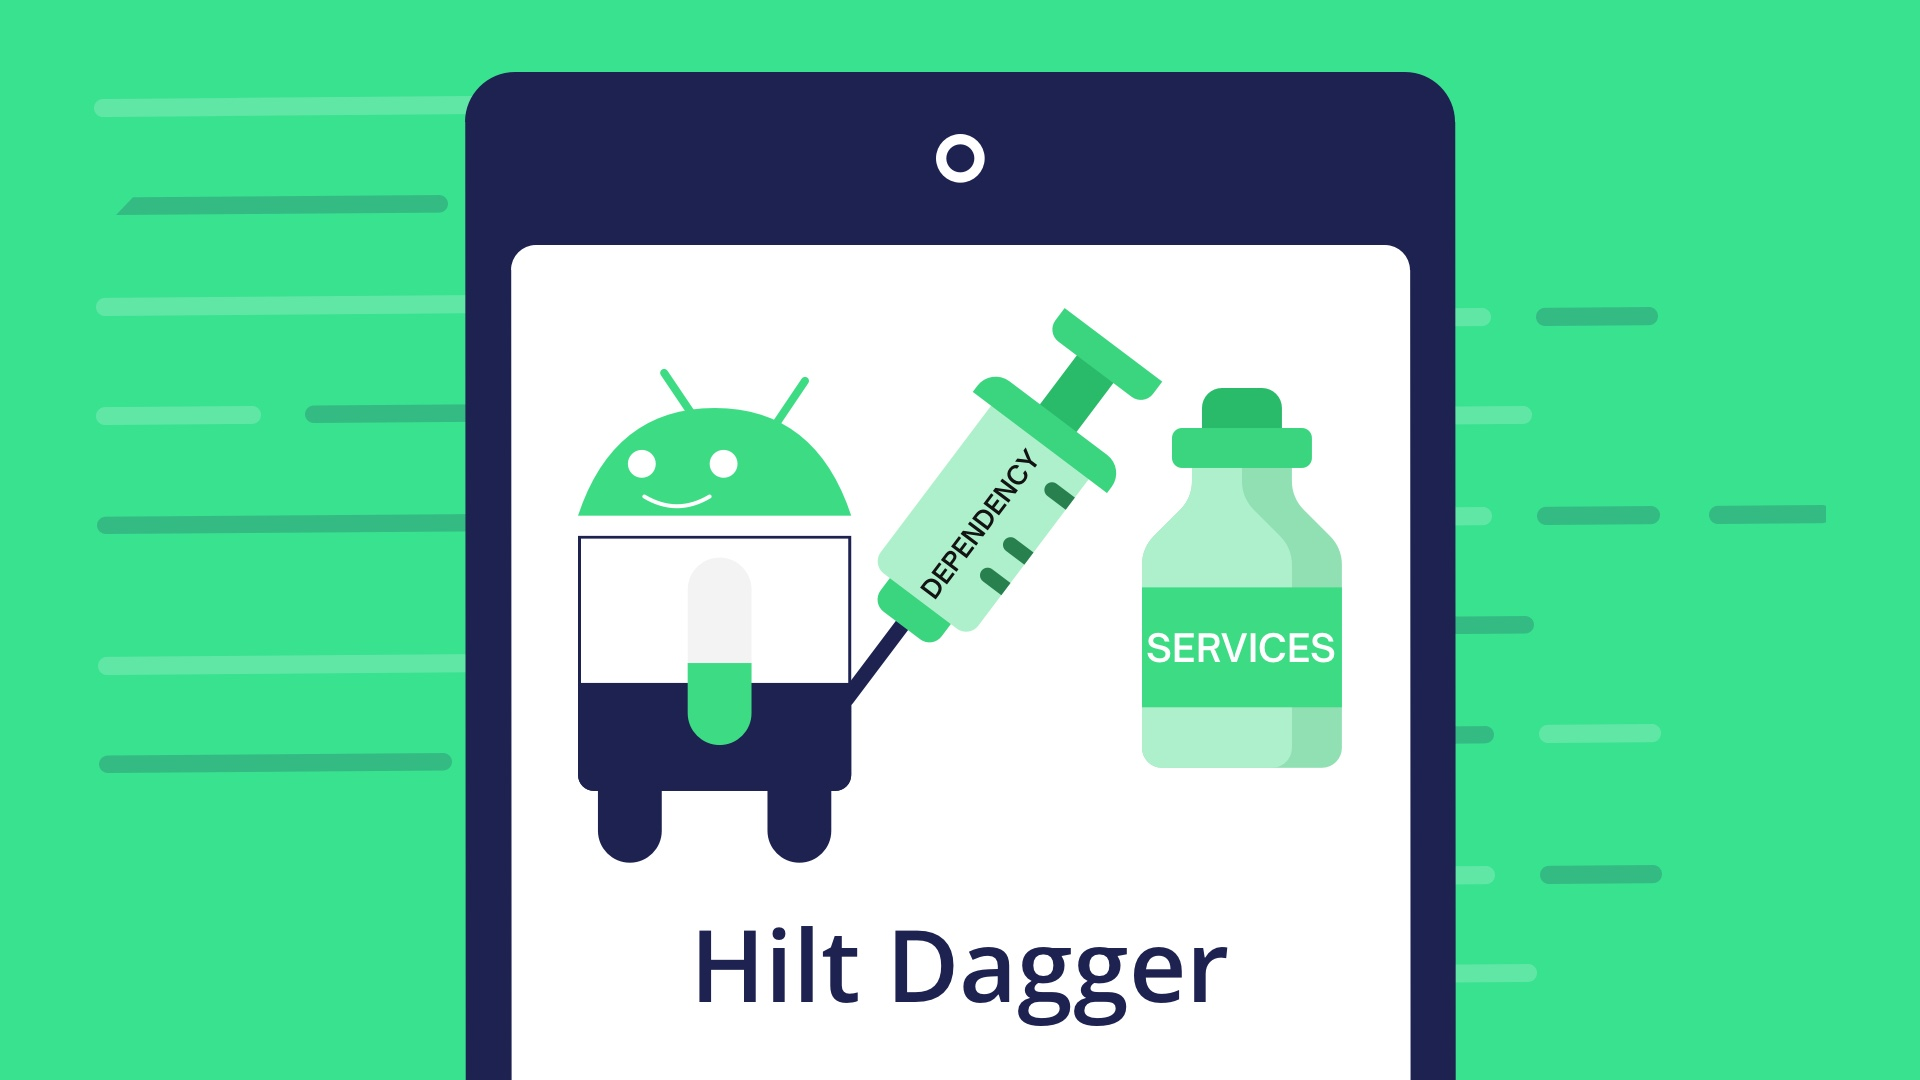 Hilt- A new and easy way to use Dagger